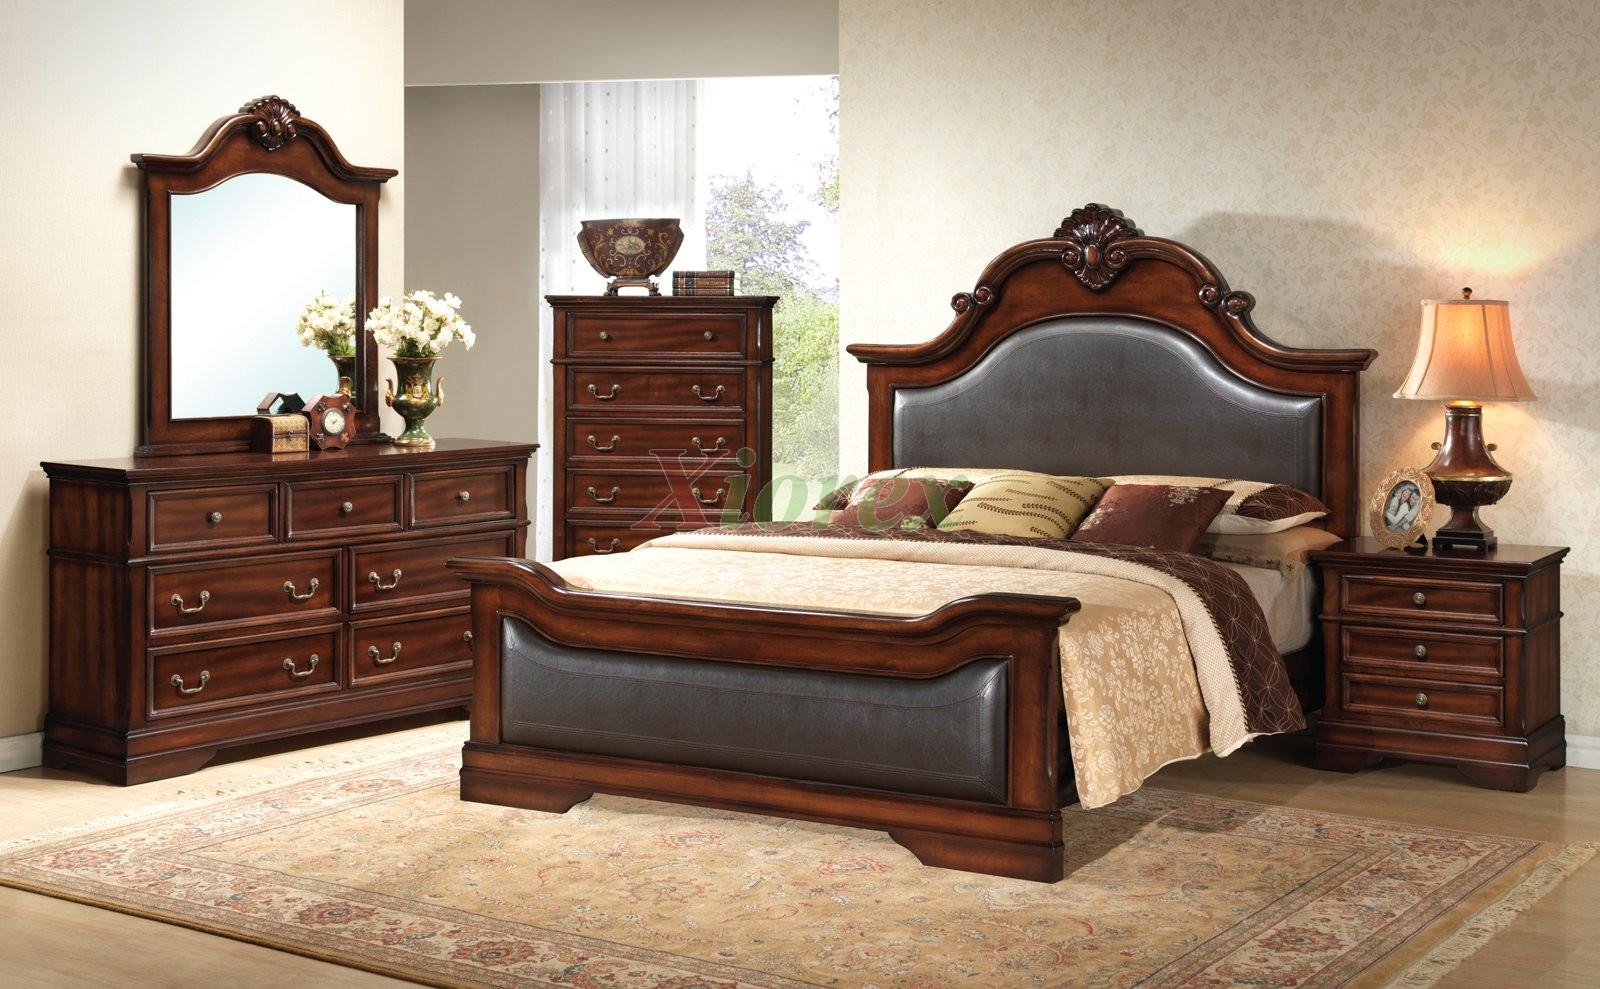 King size bedroom sets with leather headboard bedroom Small leather couch for bedroom